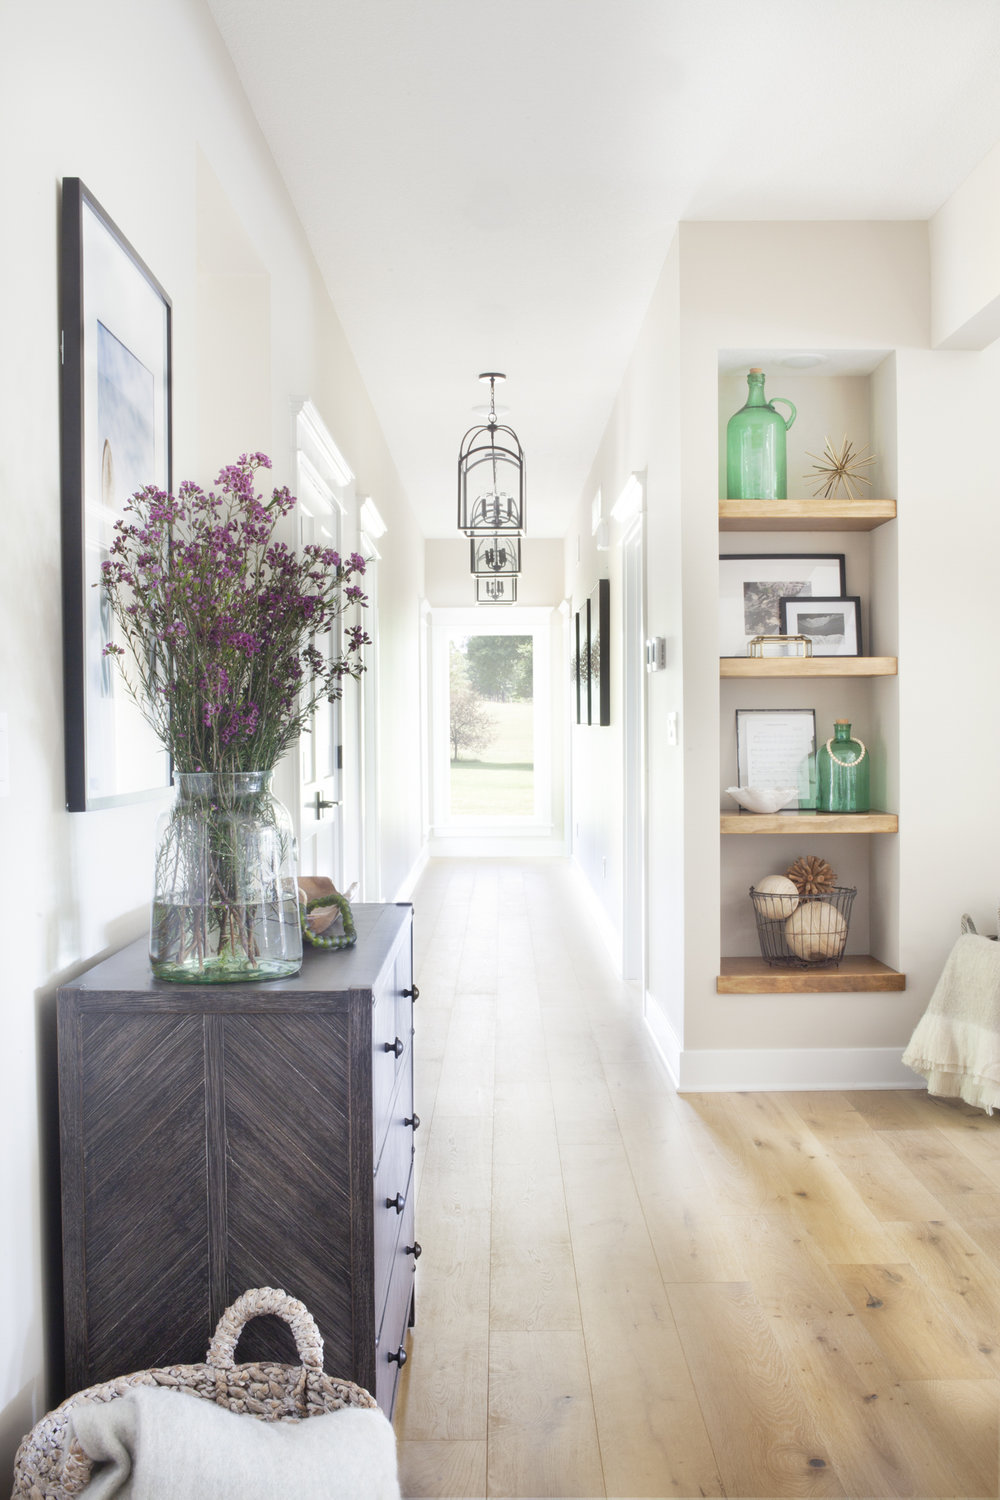 before-and-after-home-reveal-scout-and-nimble-lake-view-luxe-country-interior-design-entry-way-console-table-95.jpg